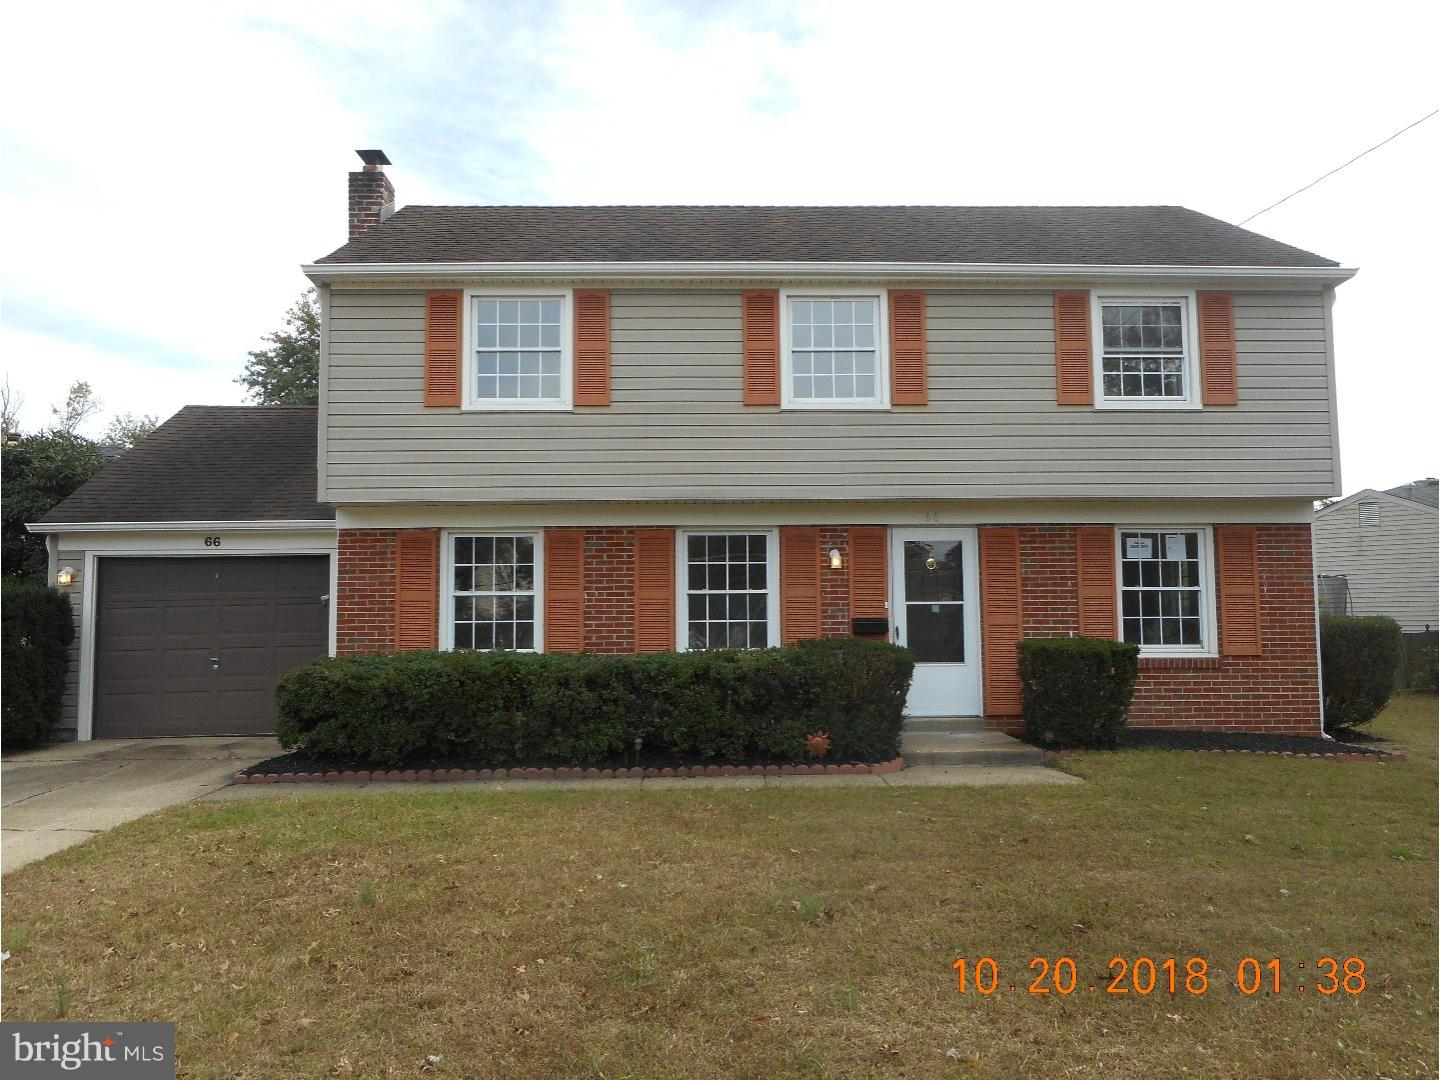 Single Family Home for Sale at 66 LONGWOOD Drive Stratford, New Jersey 08084 United States